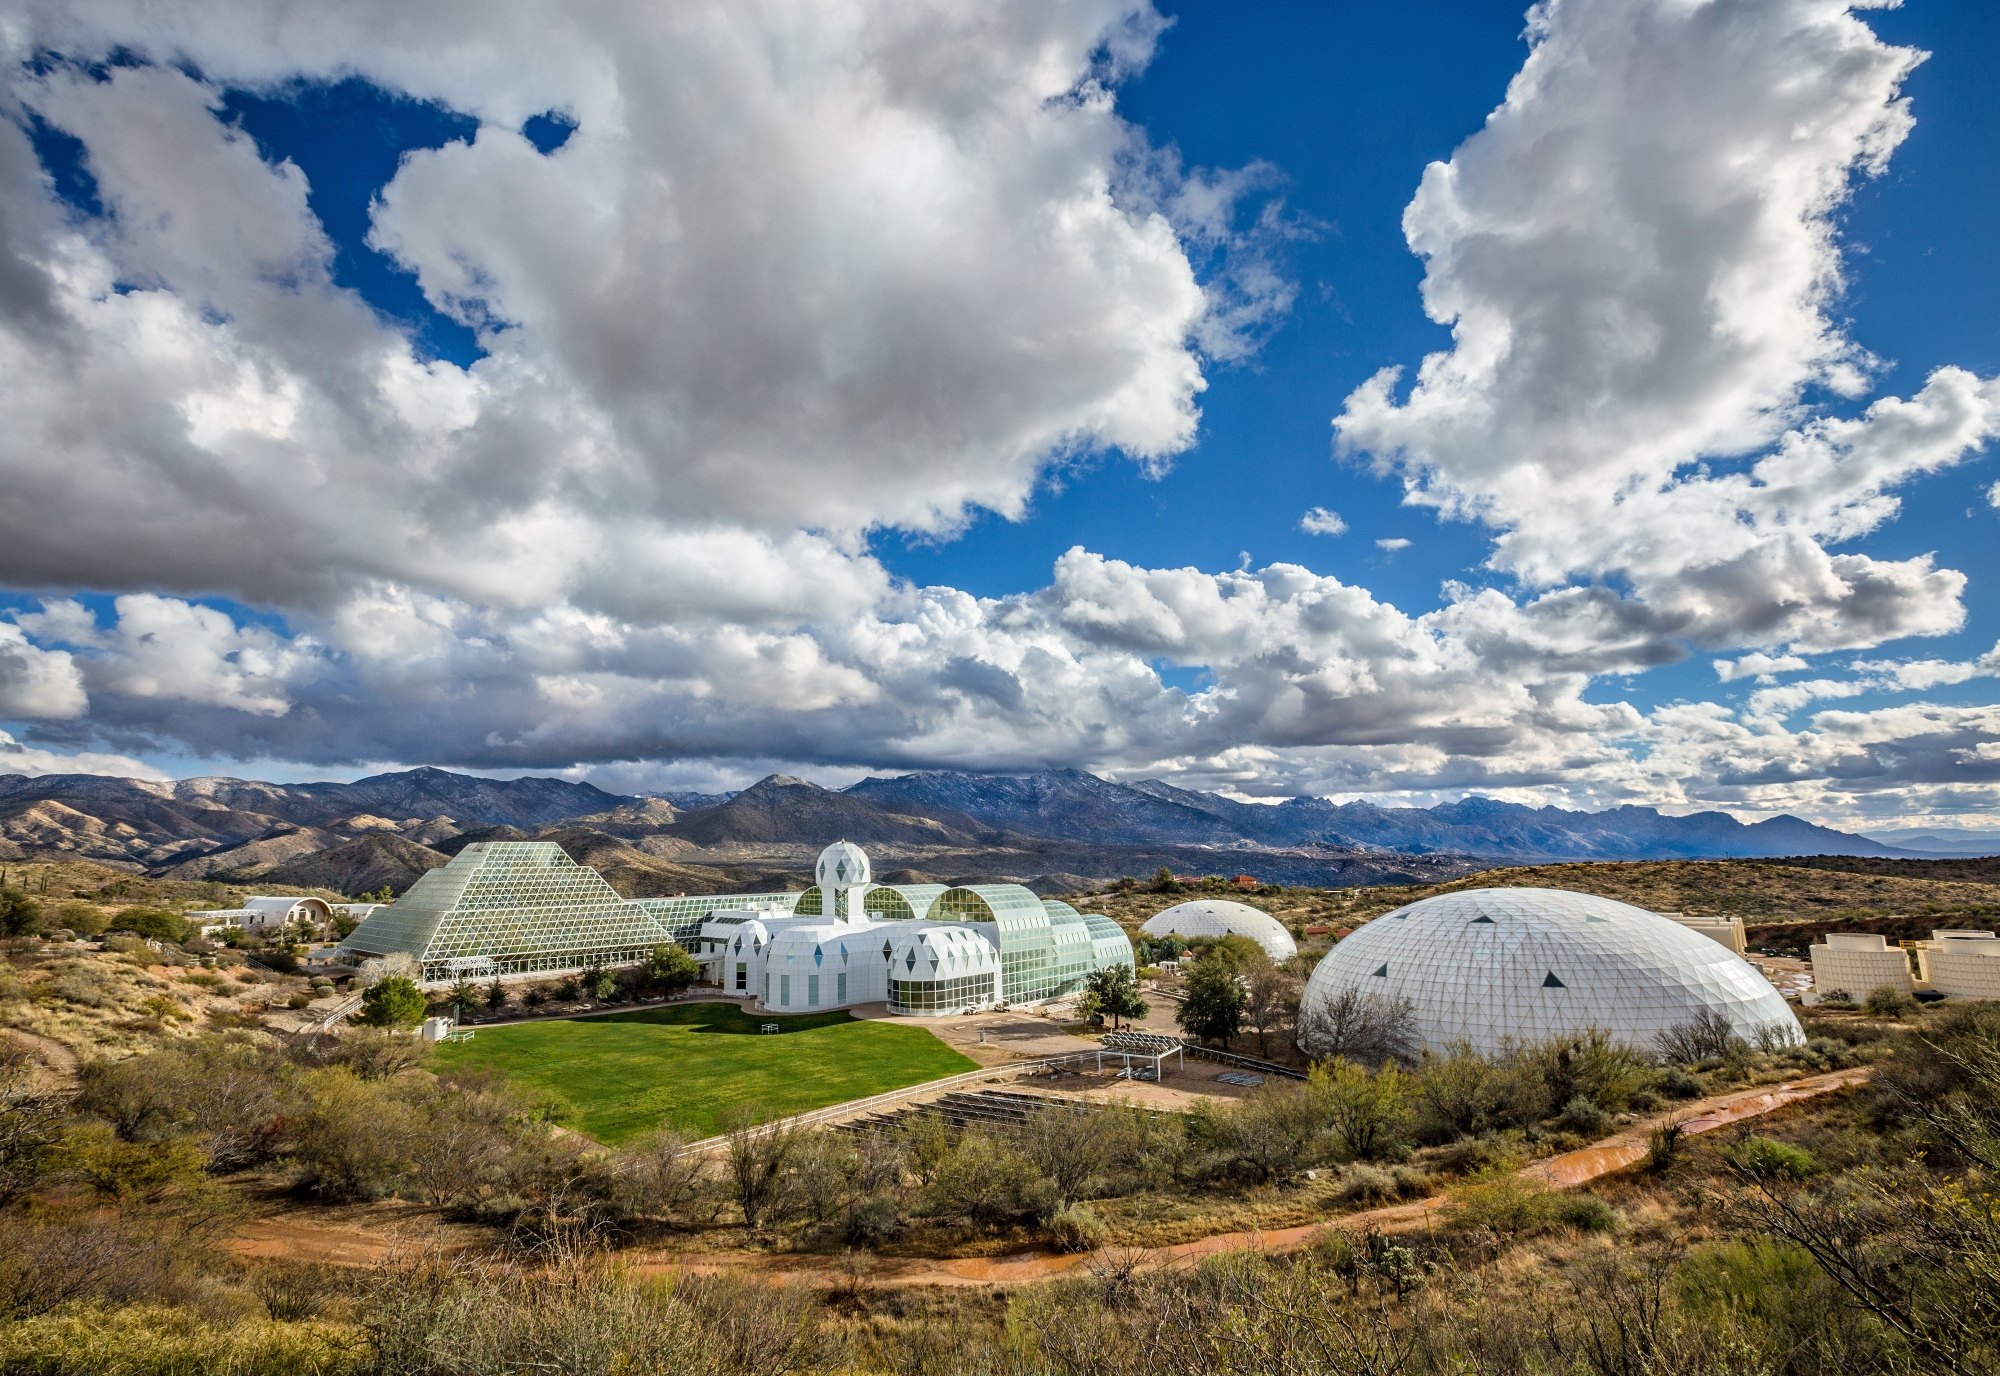 Biosphere2 from above